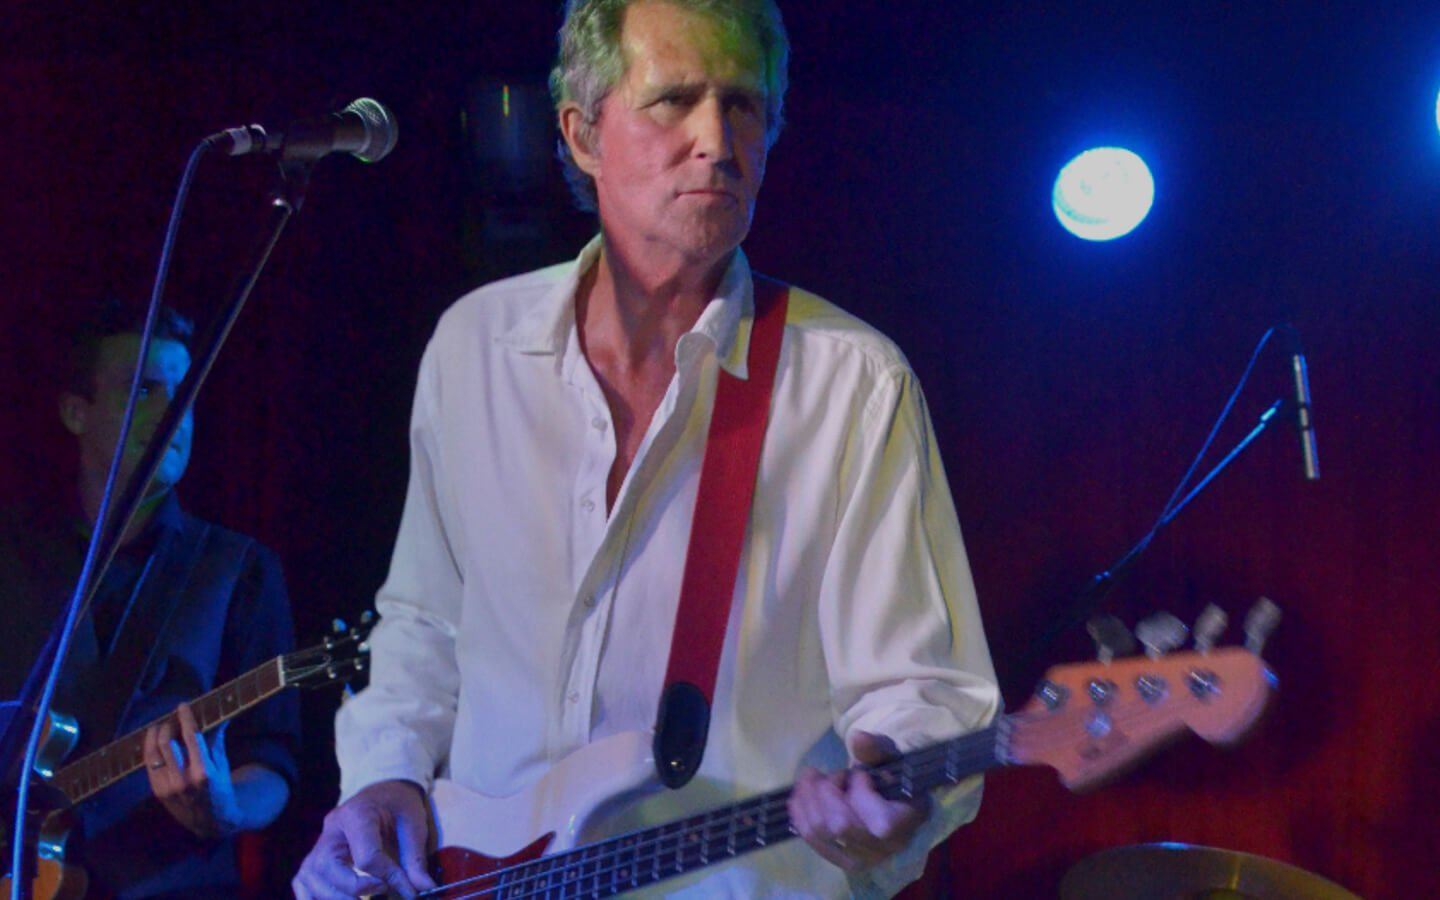 JOHN ILLSLEY OF DIRE STRAITS (UK)